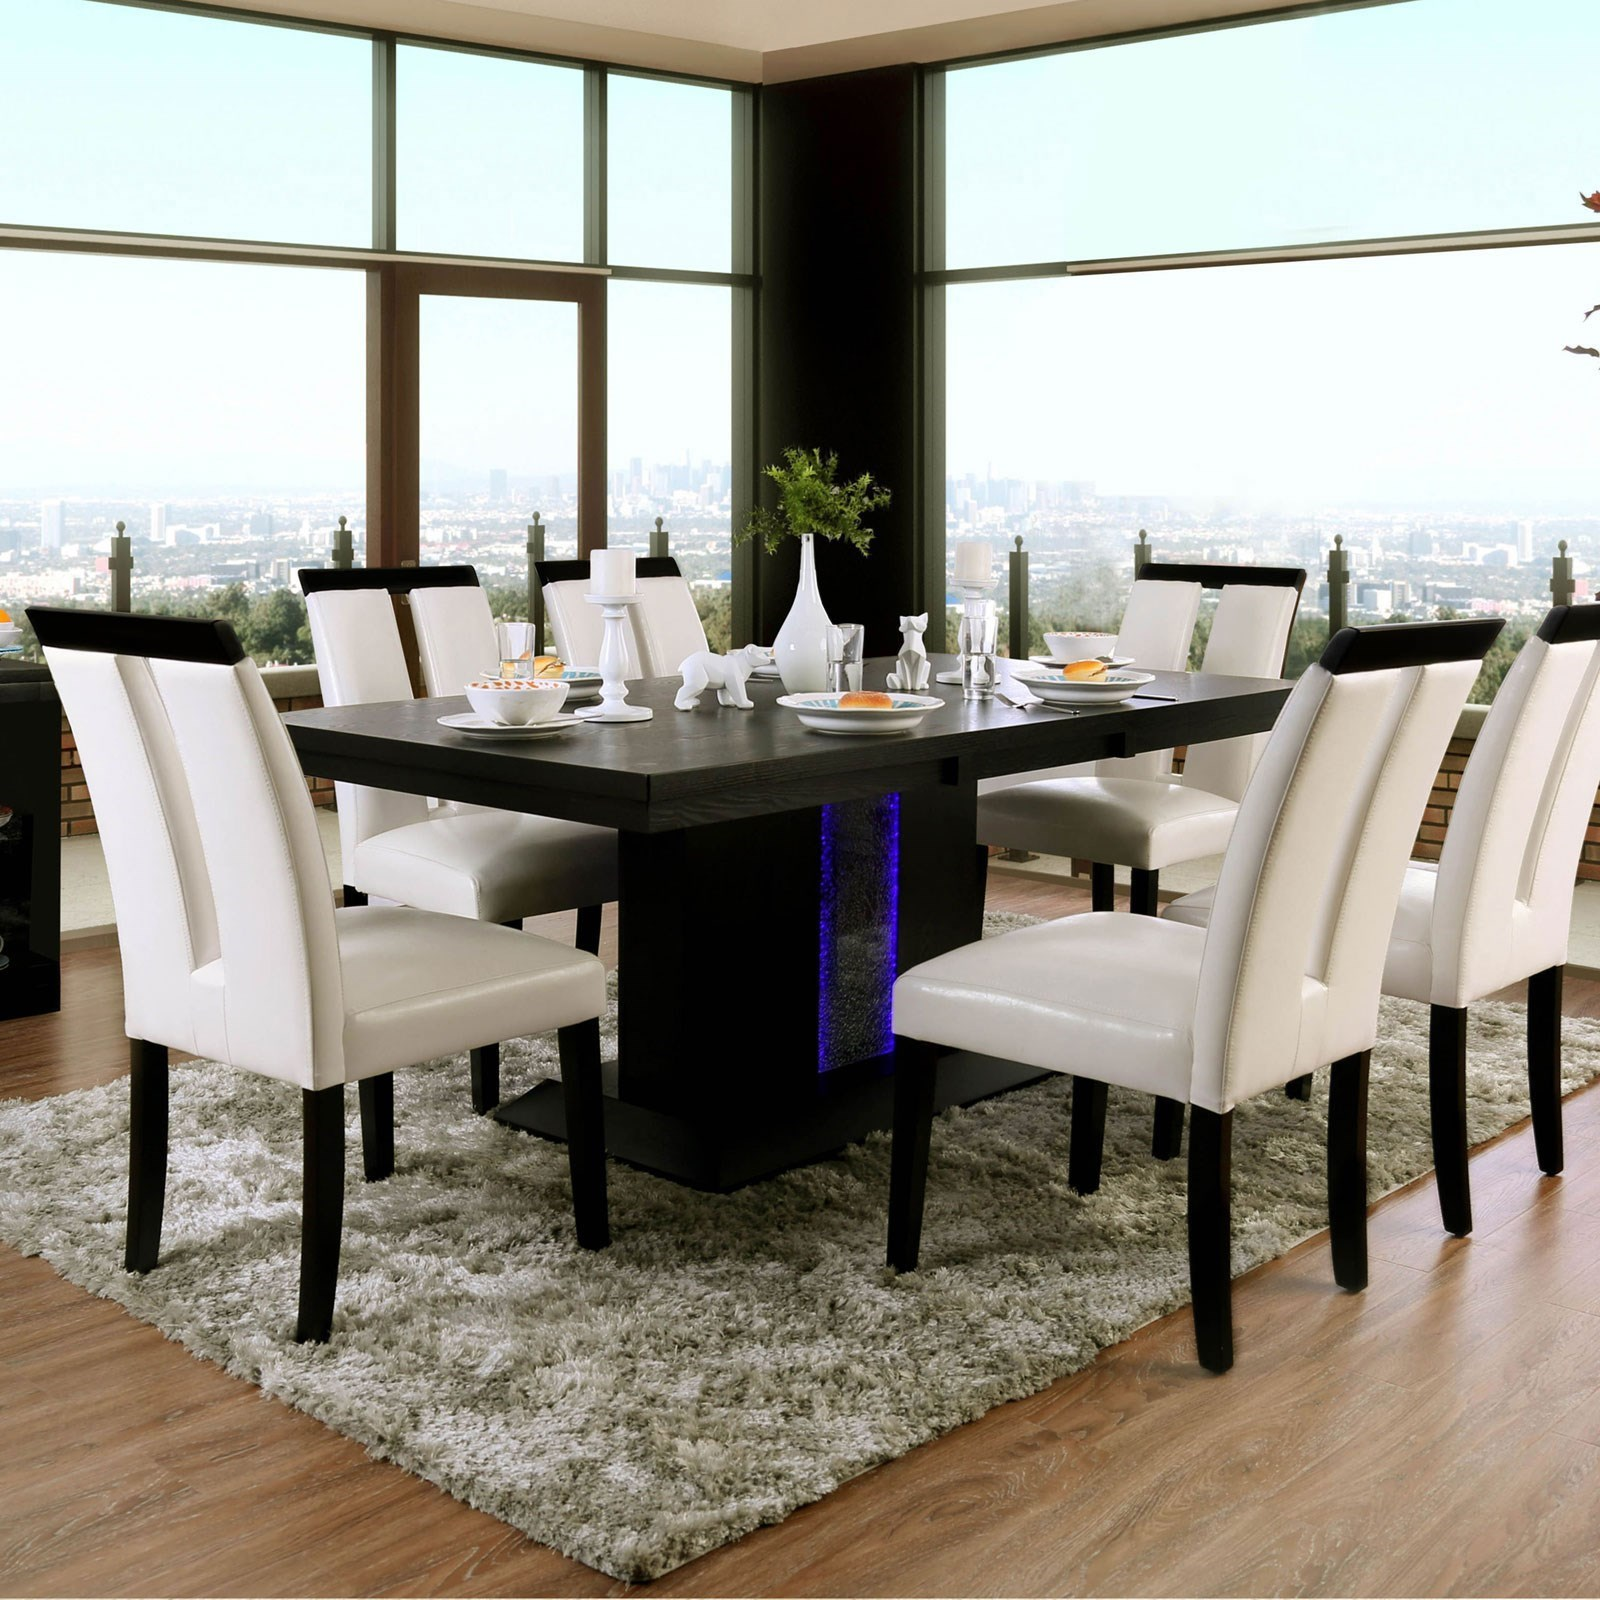 Furniture Of America Evangeline Contemporary Dining Table With LED